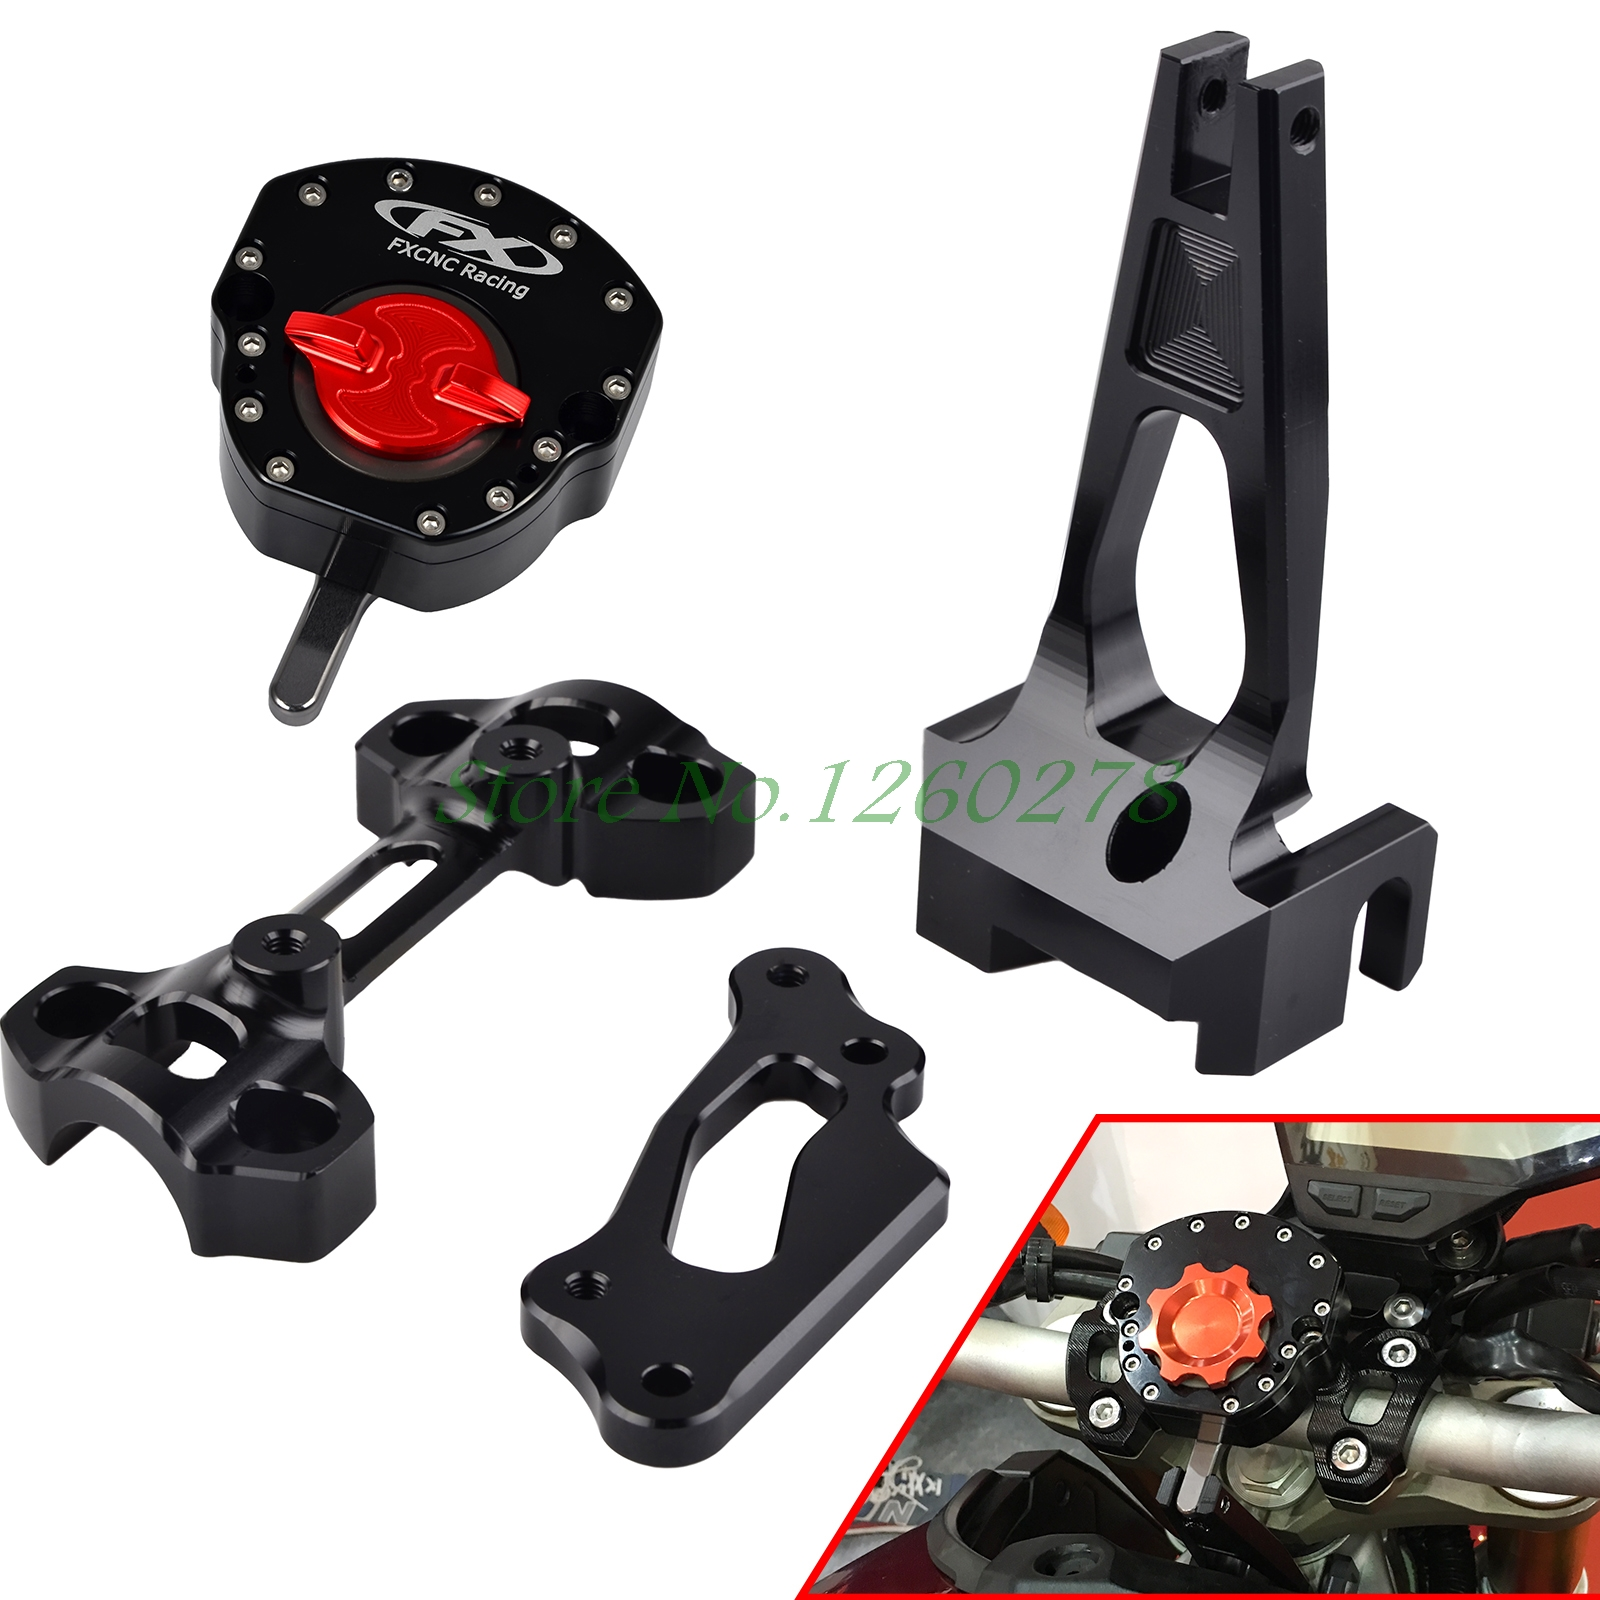 Motorcycle Steering Damper Stabilizer with Mounting Bracket Kit For Yamaha MT09 MT-09 FZ09 FZ-09 2014 2015 2016 motorcycle steering damper stabilizer with mounting bracket kit for yamaha mt09 mt 09 fz09 fz 09 2014 2015 2016